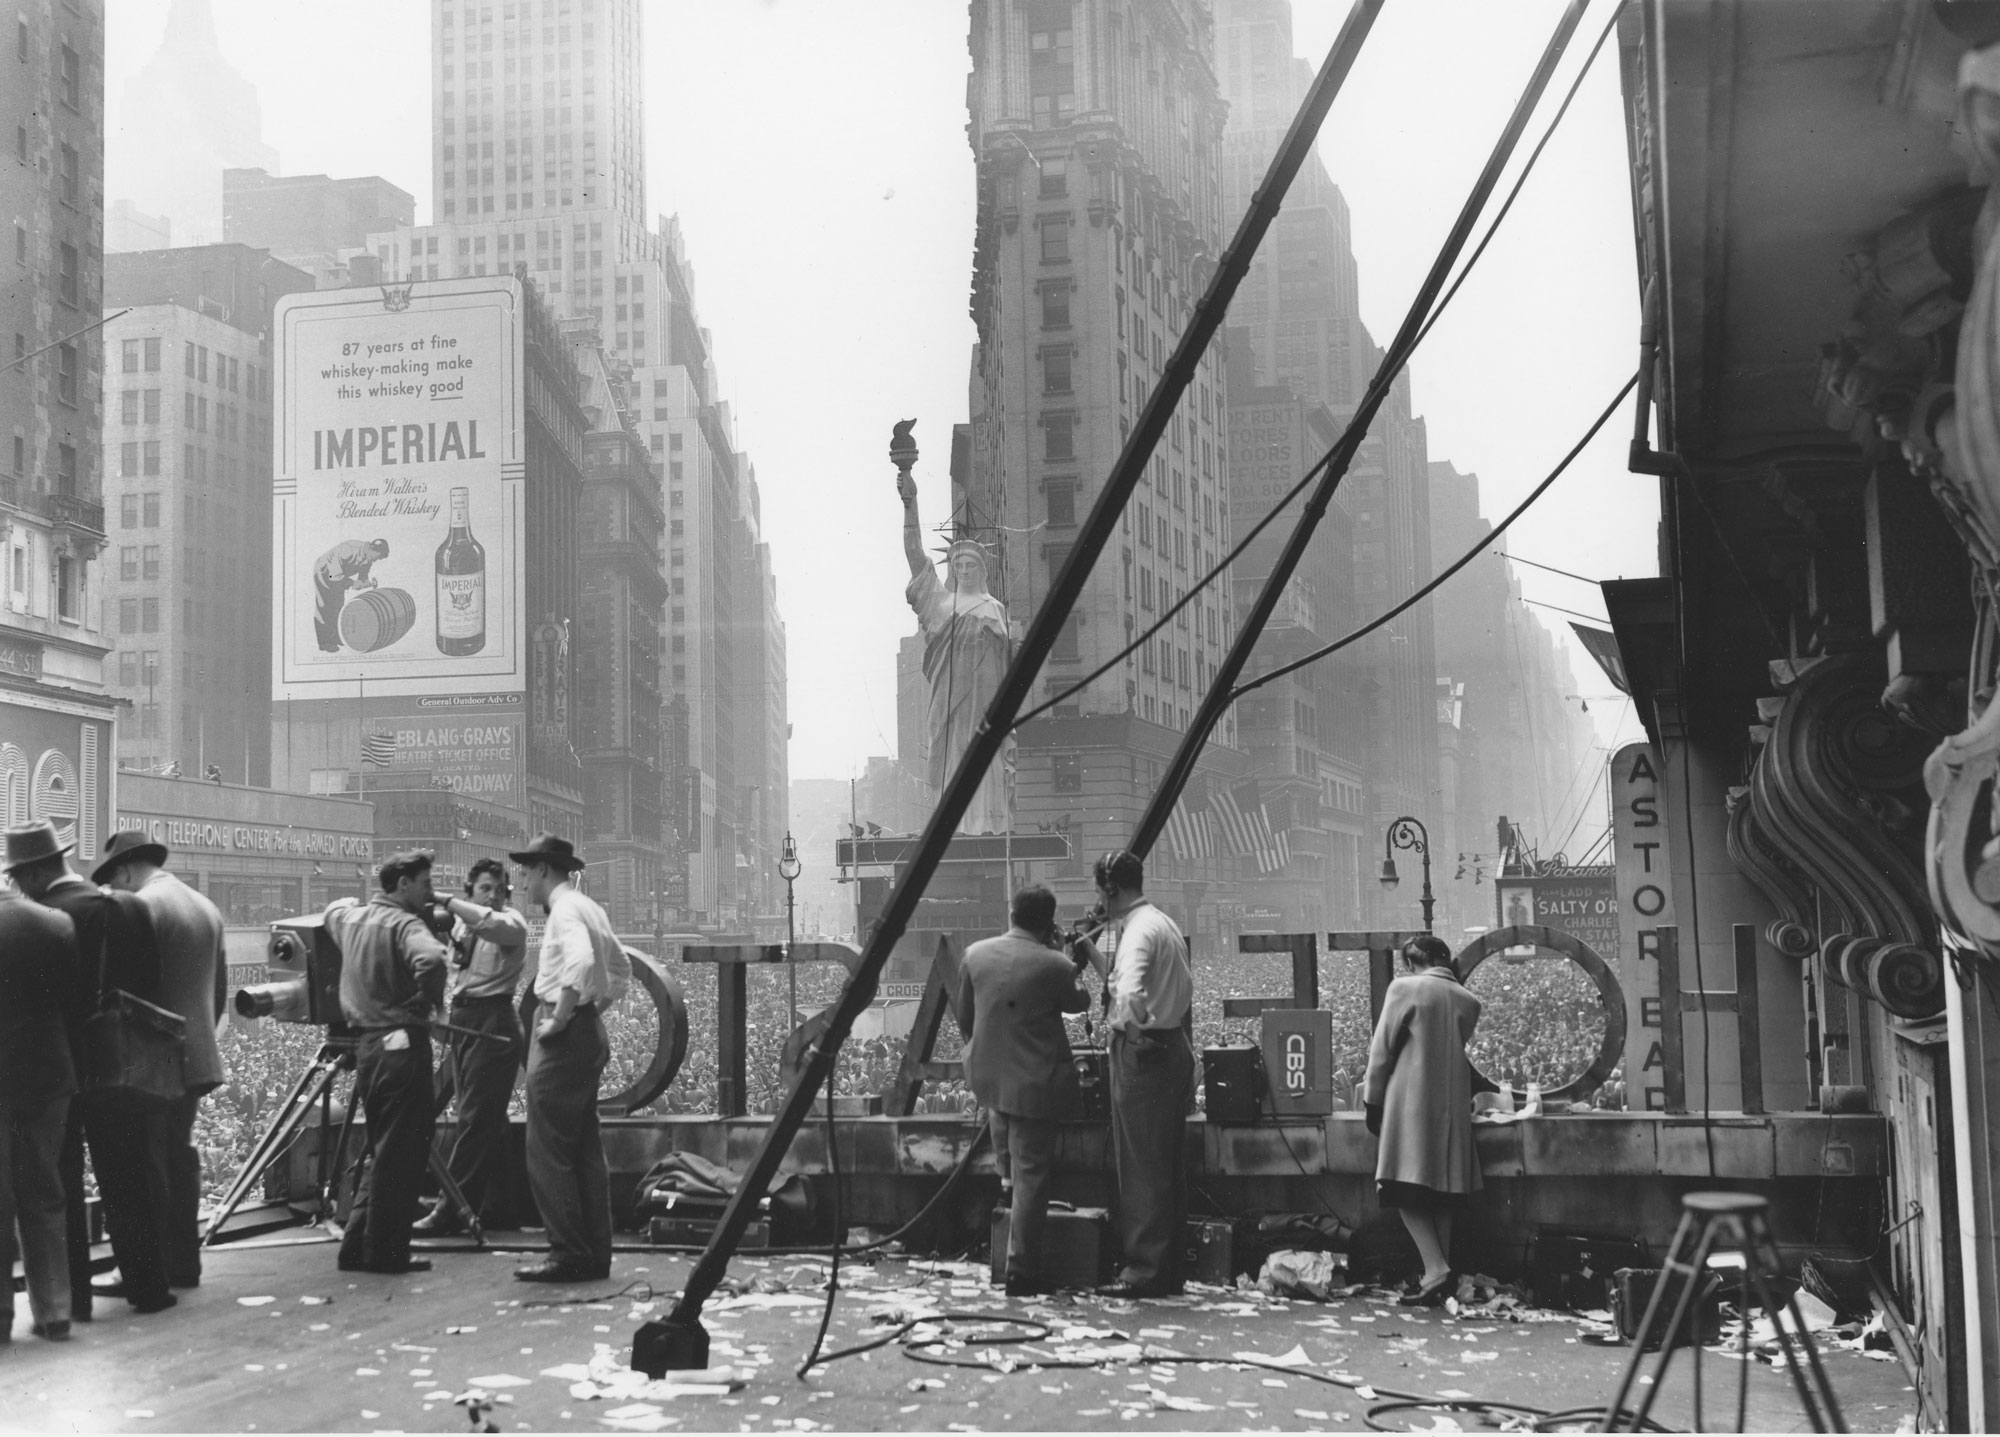 Ruth Orkin VE Day Times Square New York City 1945